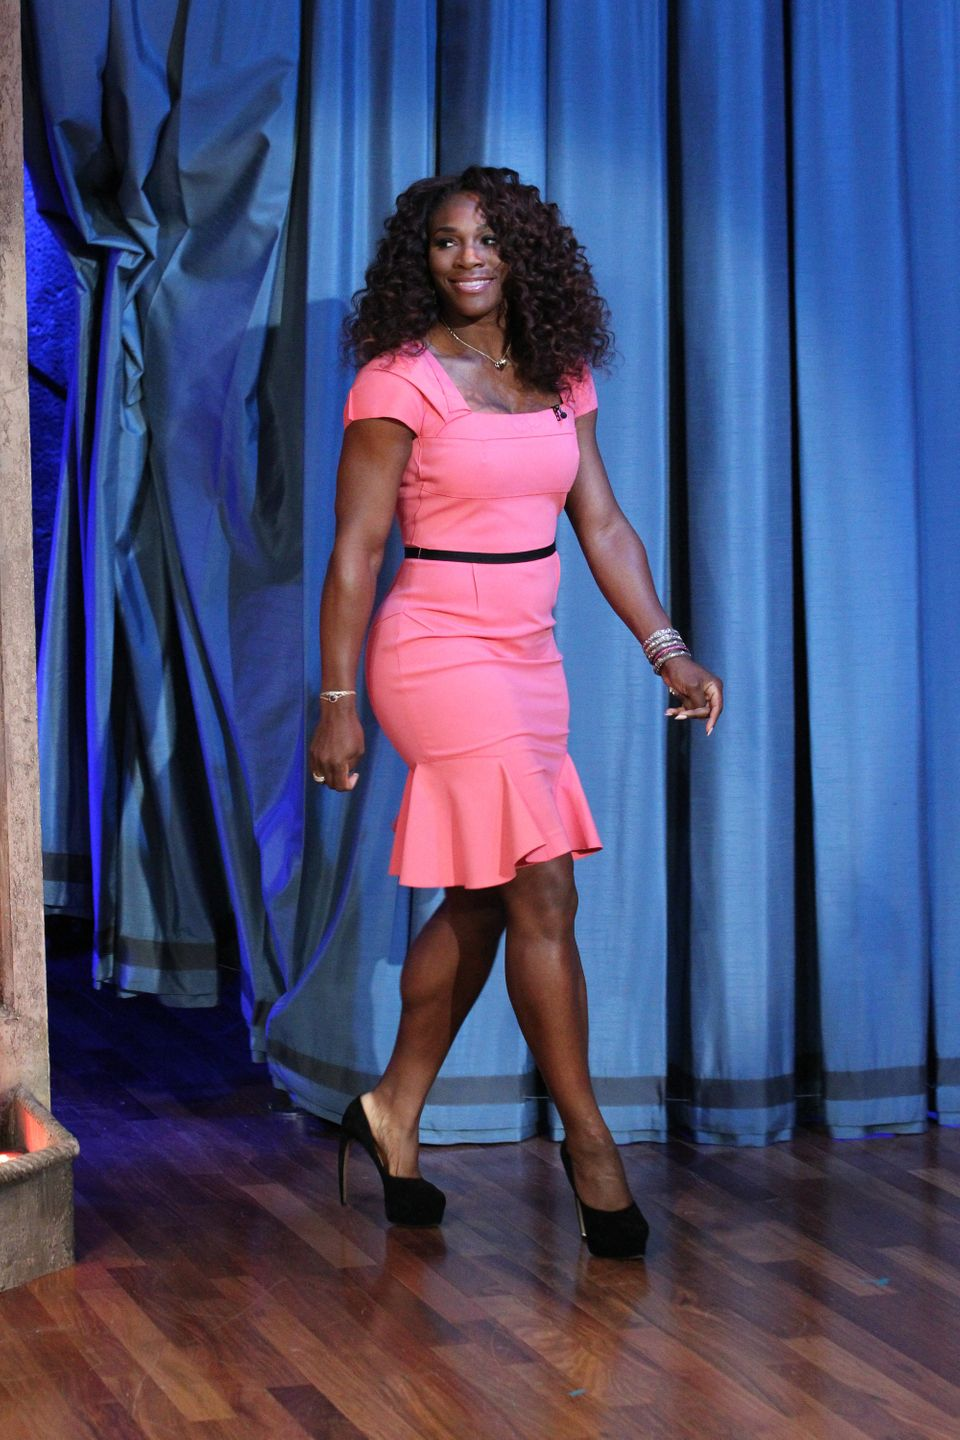 LATE NIGHT WITH JIMMY FALLON -- Episode 695 -- Pictured: Serena Williams arrives on September 10, 2012 -- (Photo by: Lloyd Bi